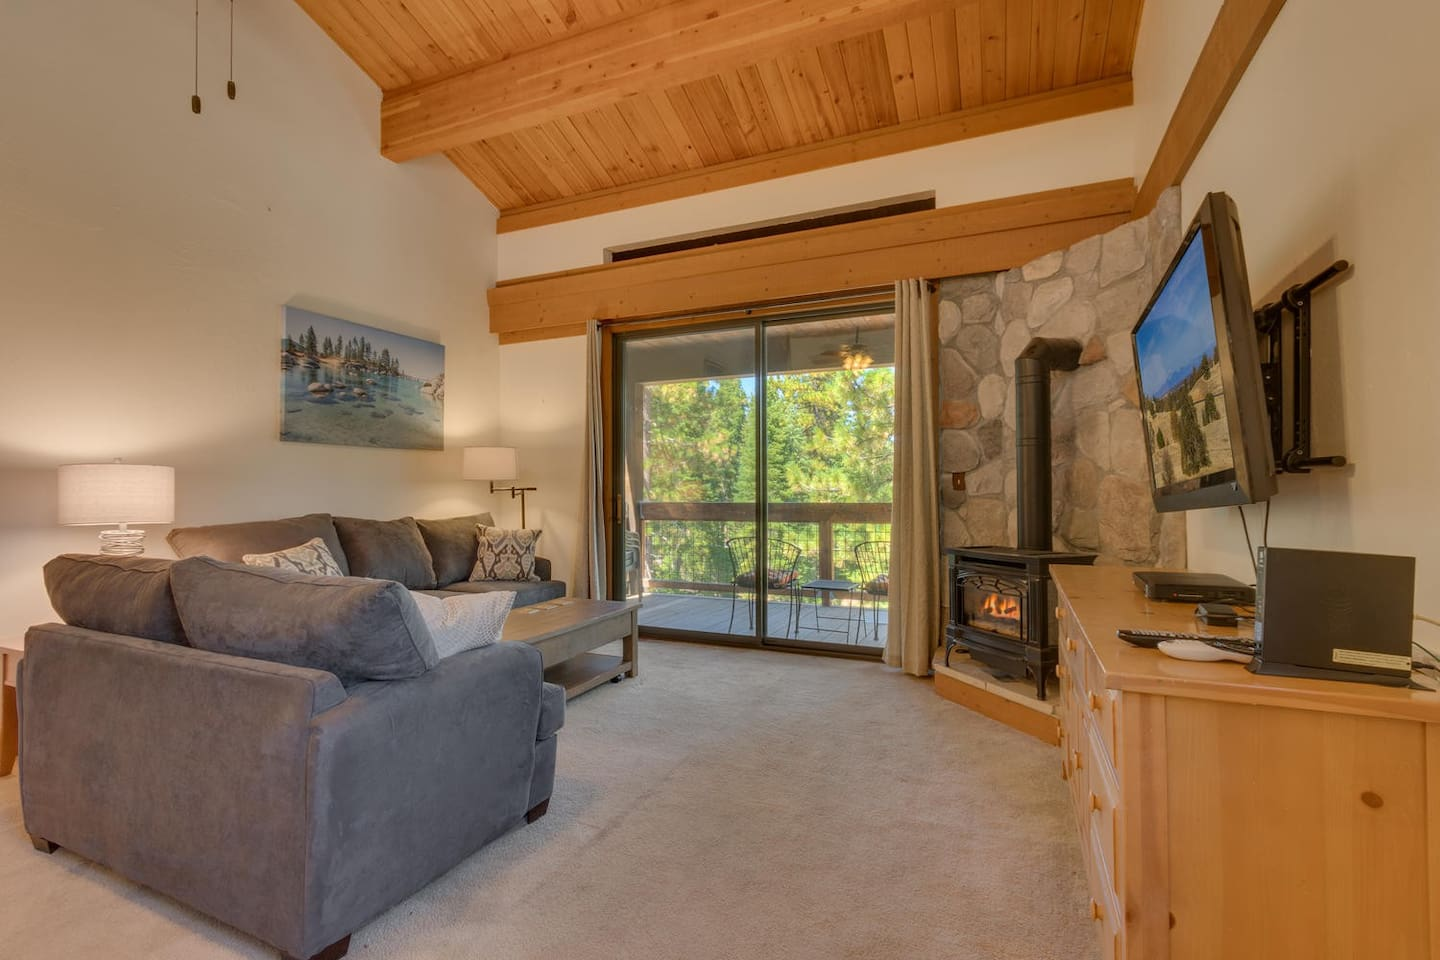 Let me give you a tour of my lofted 1 bedroom space here in the Northstar Tahoe resort!